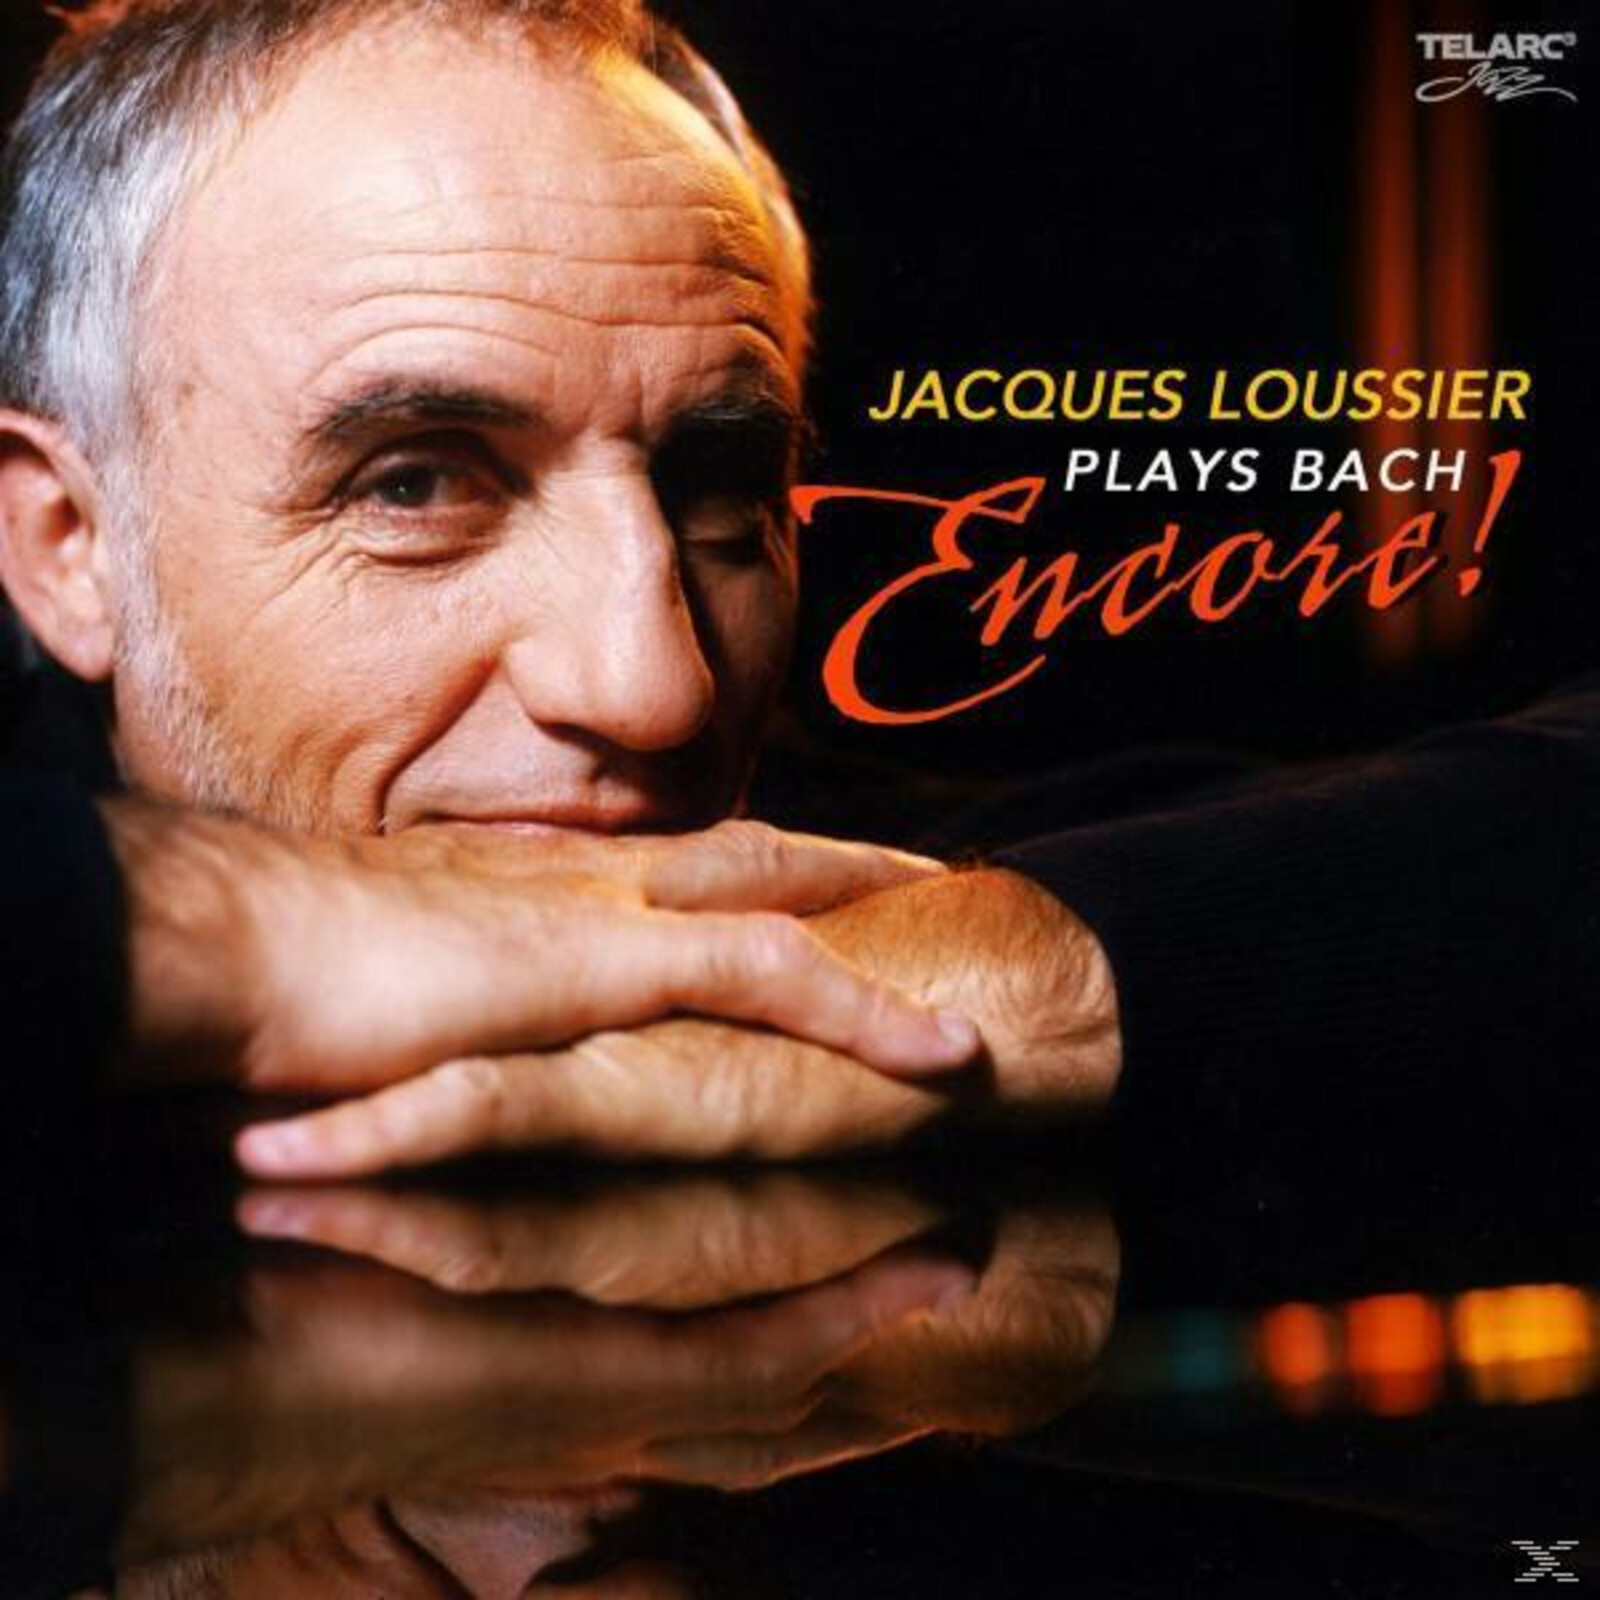 Loussier Jacques - Jacques Loussier Plays Bach - Encore!